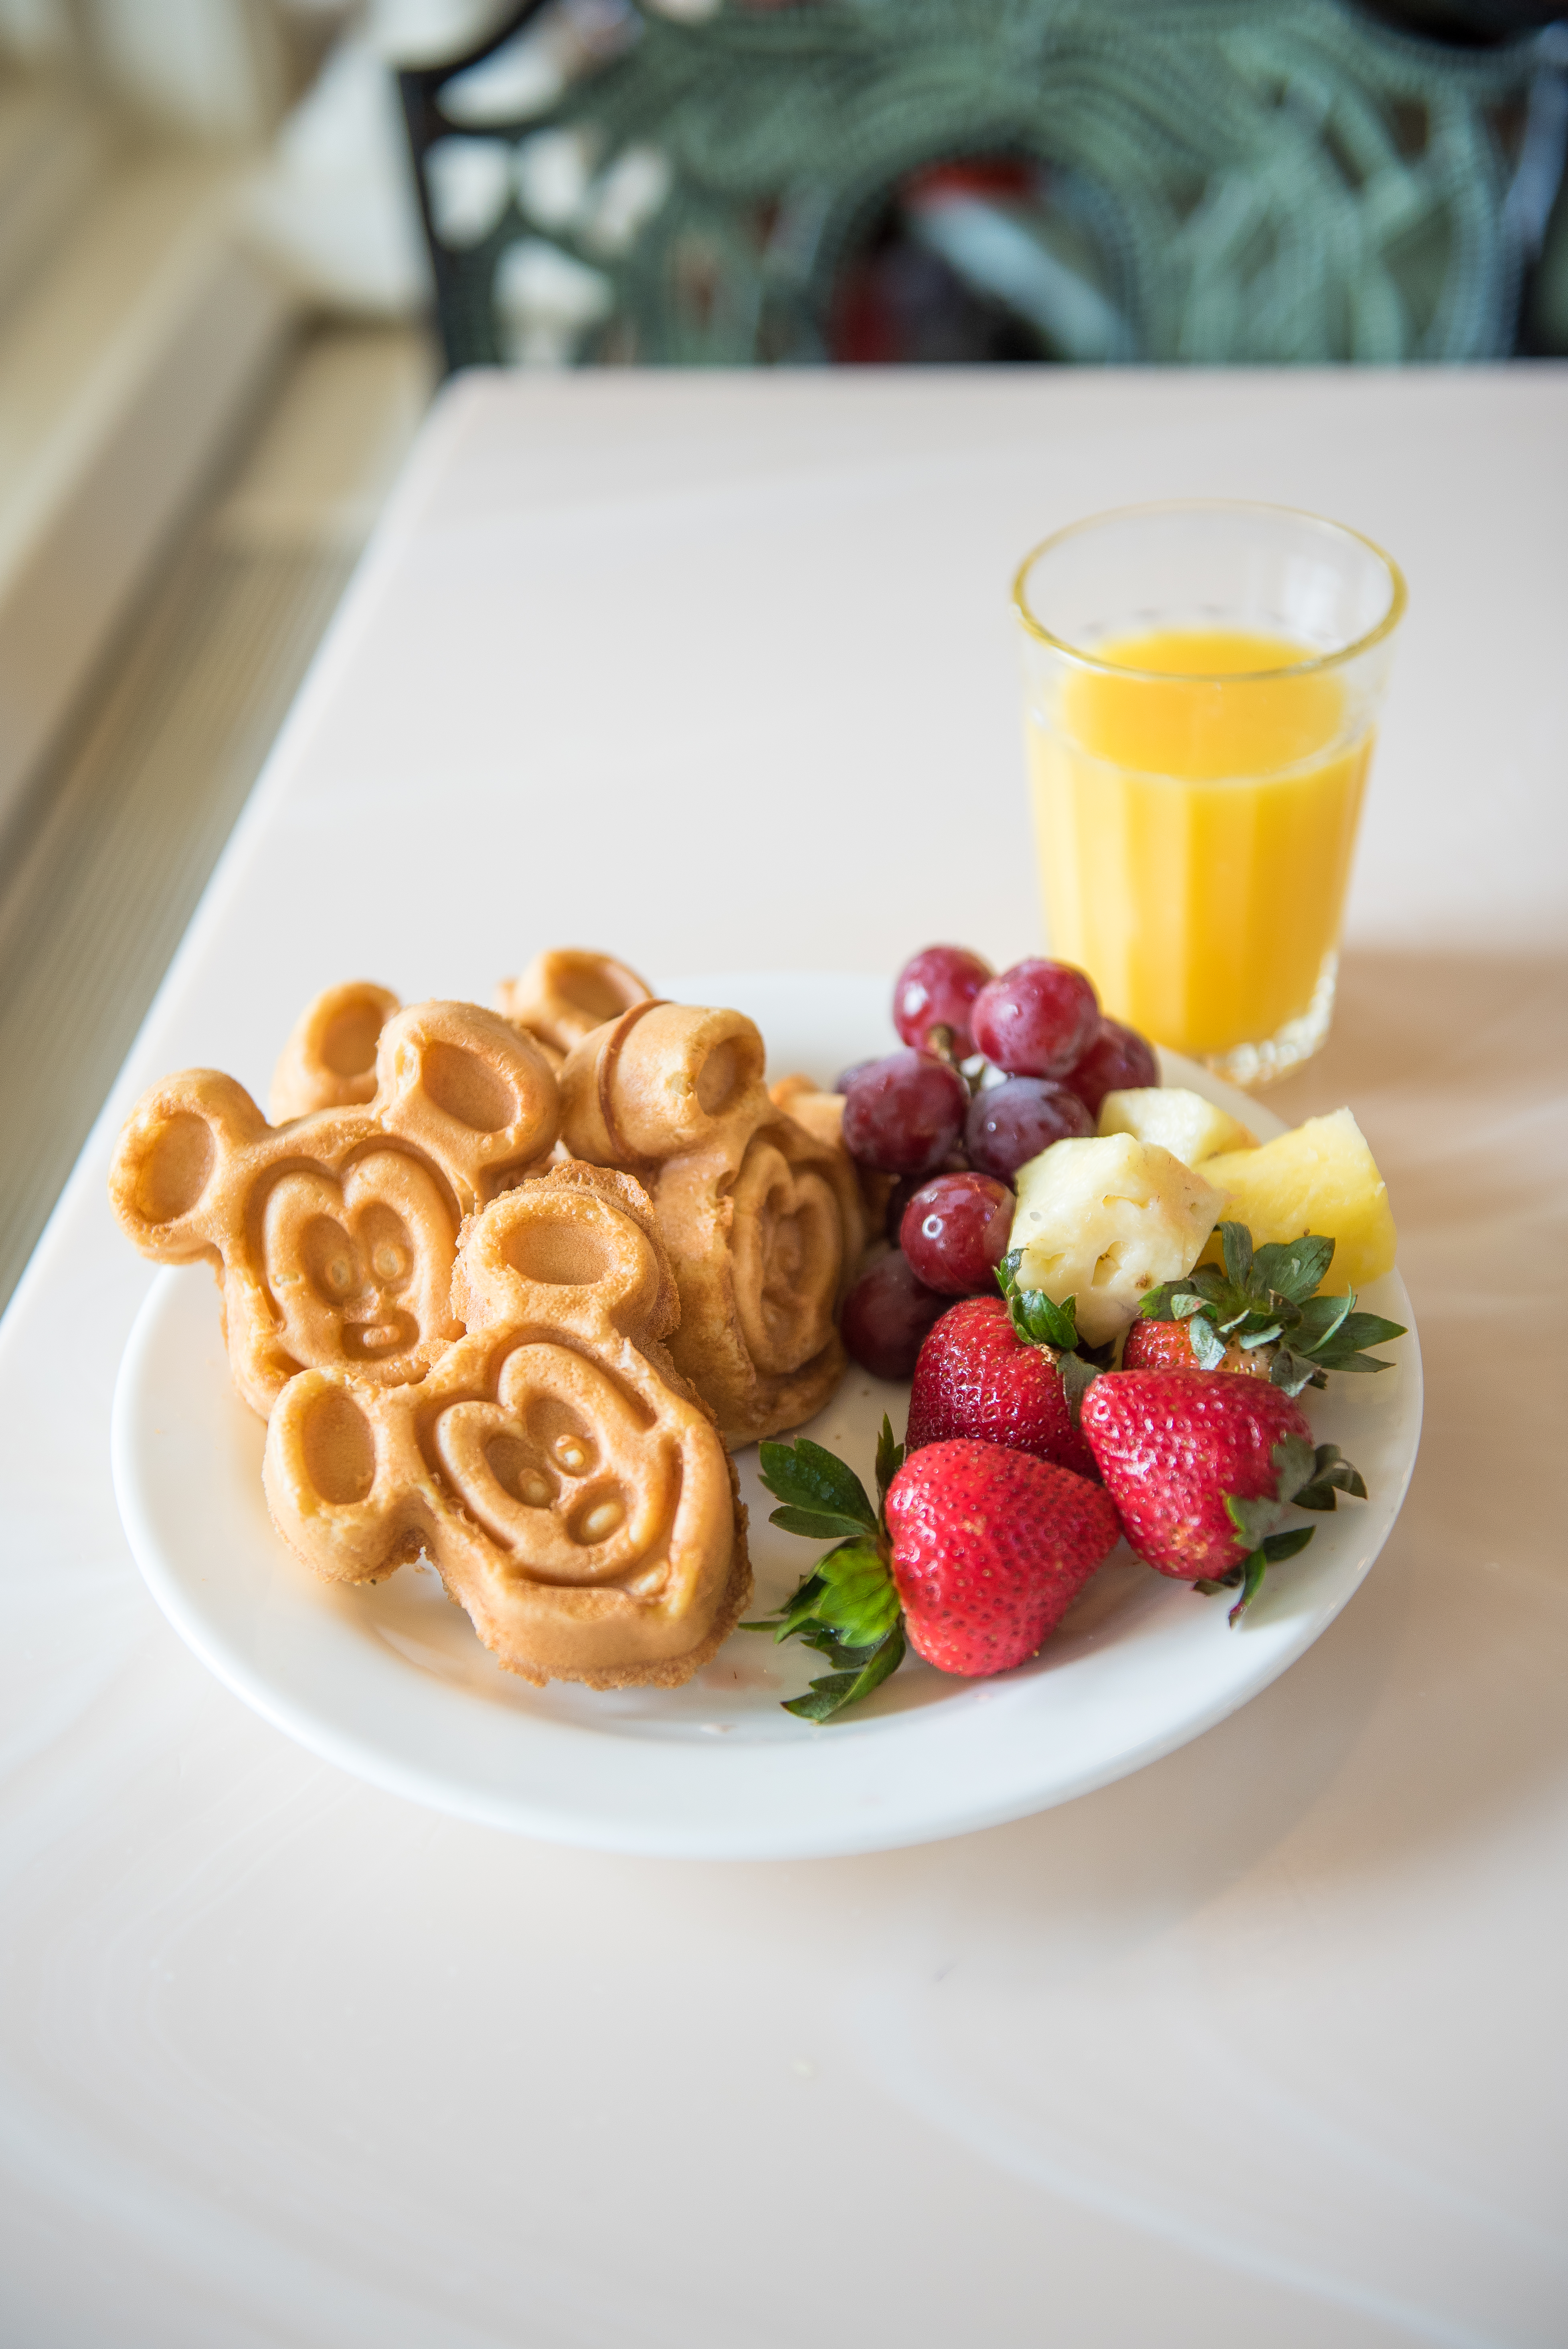 Mickey Waffles are the perfect start to the day - photo by Laurie Sapp.